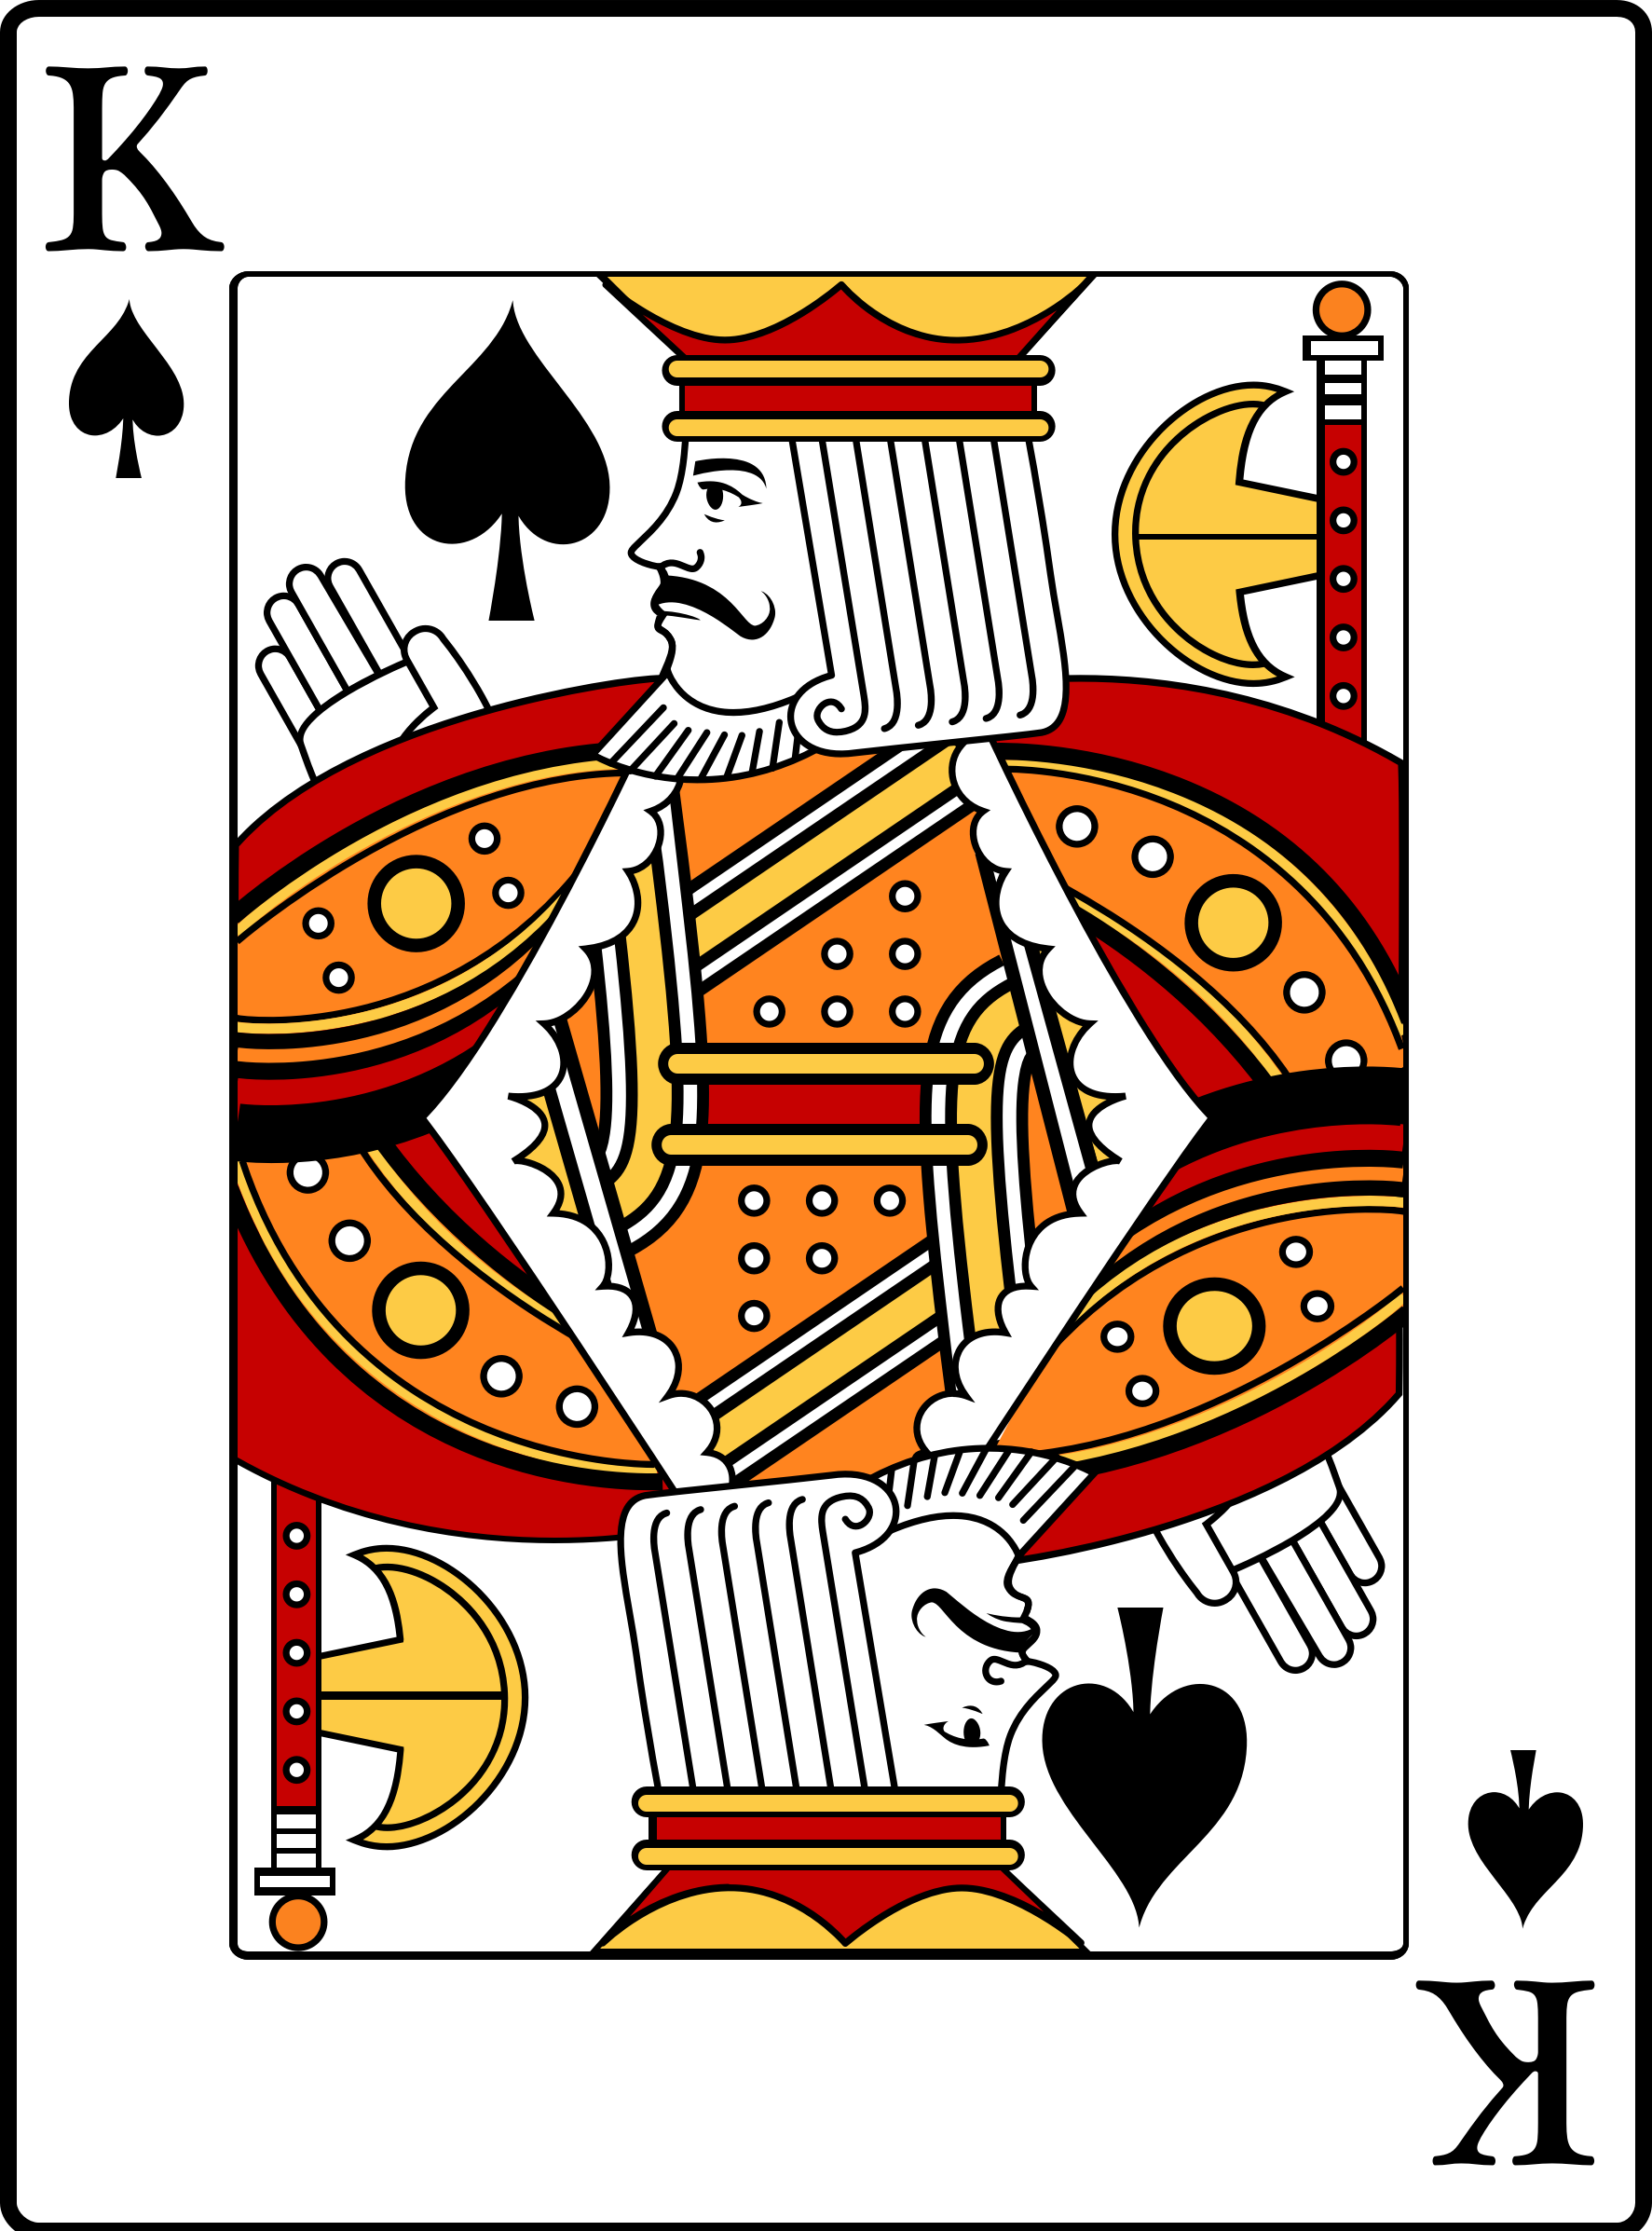 King of Spades by casino